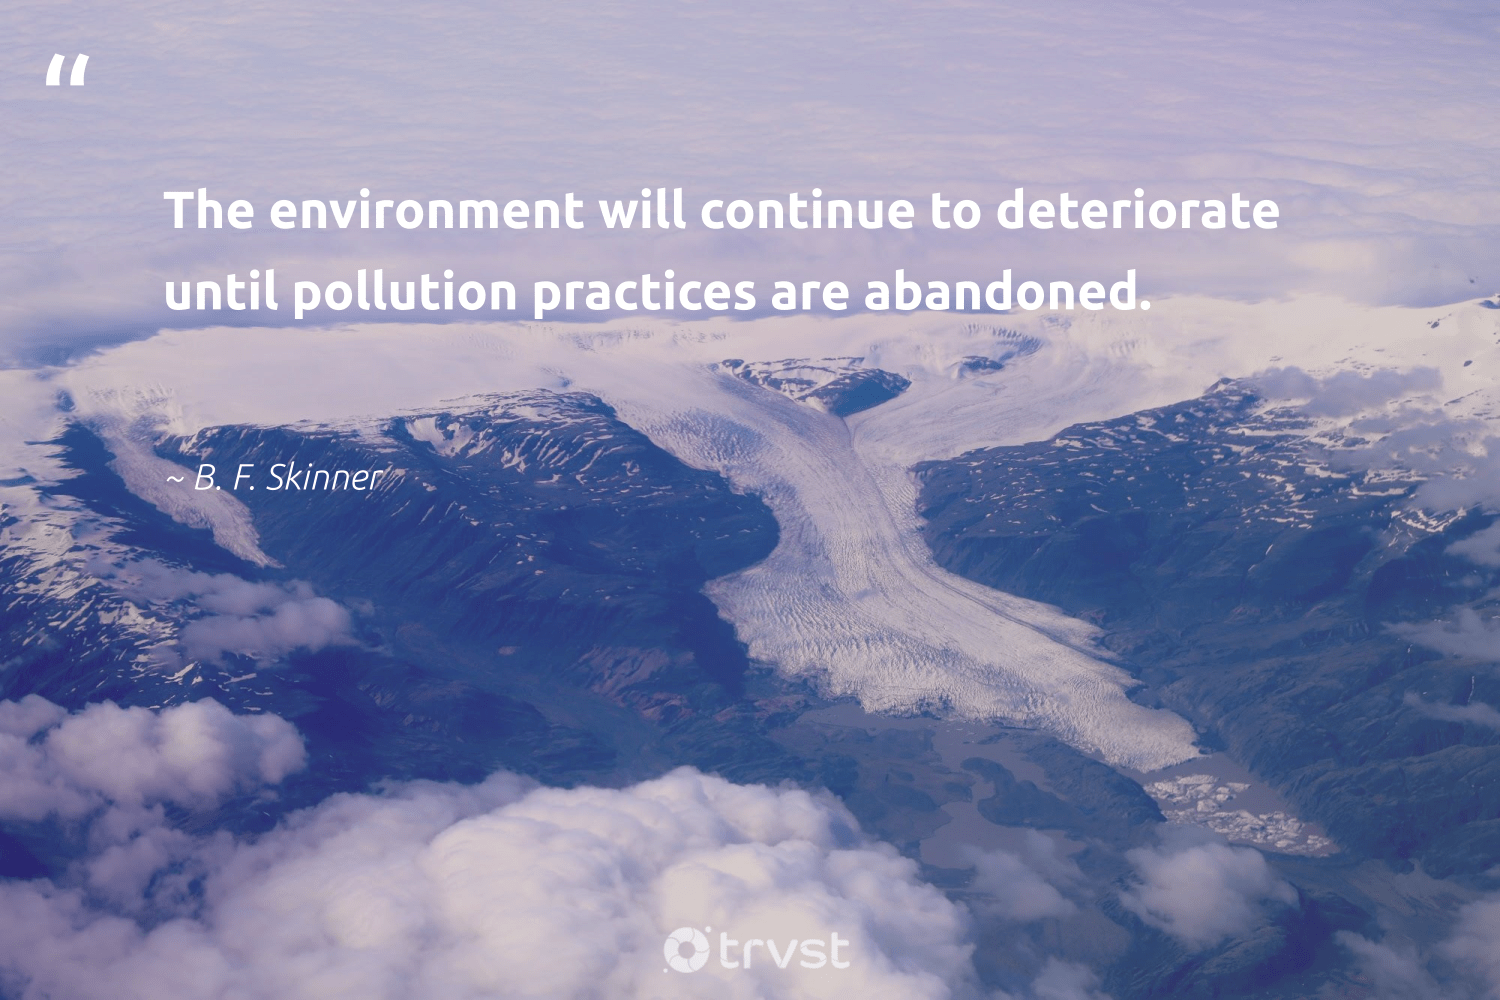 """""""The environment will continue to deteriorate until pollution practices are abandoned.""""  - B. F. Skinner #trvst #quotes #environment #pollution #conservation #sustainablefutures #green #bethechange #nature #climateaction #earth #beinspired"""